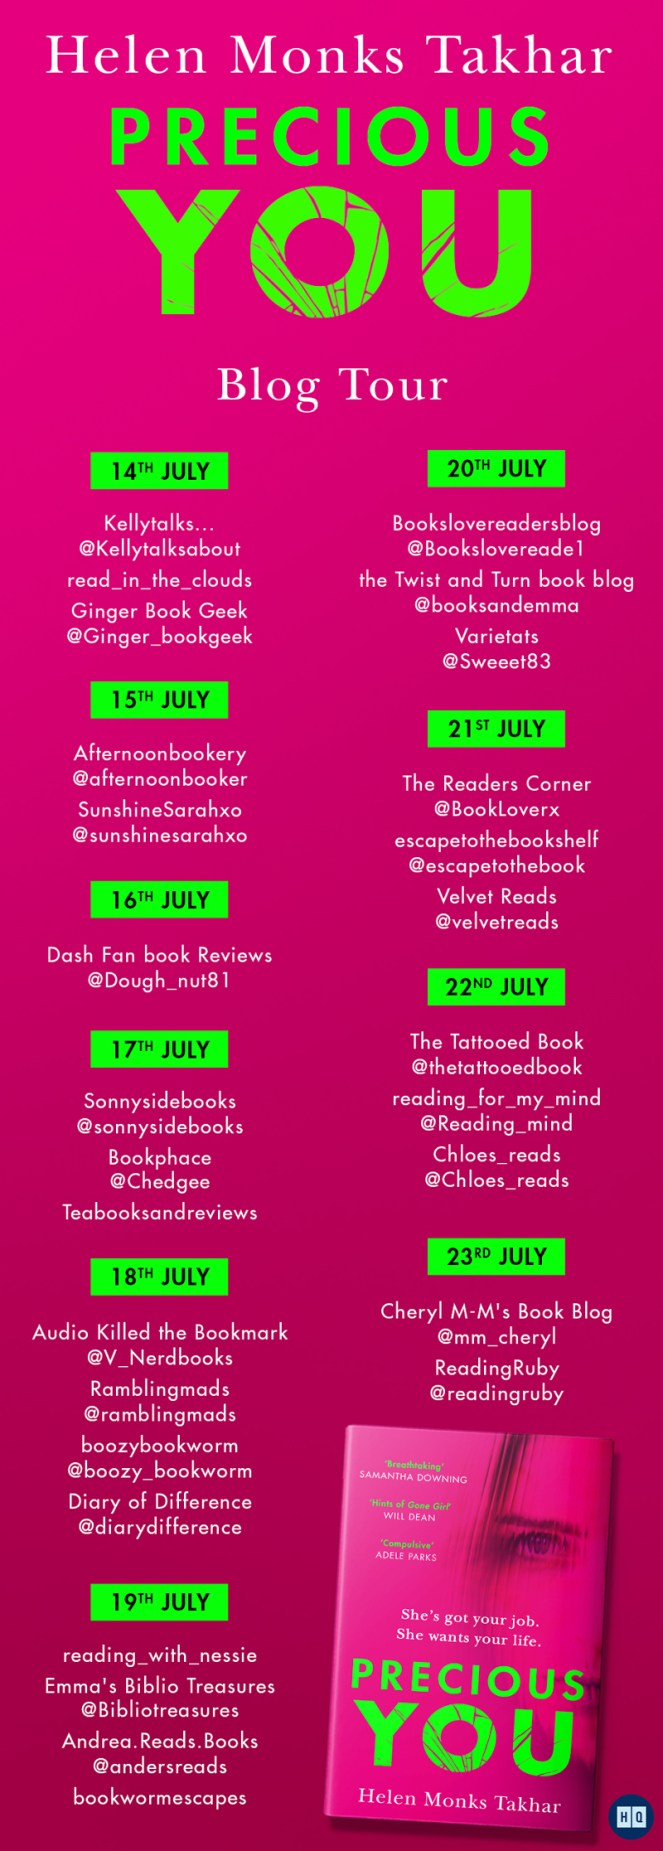 Precious You by Helen Monks Takhar Blog Tour HQ book review books blog blogging diaryofdifference diary of difference